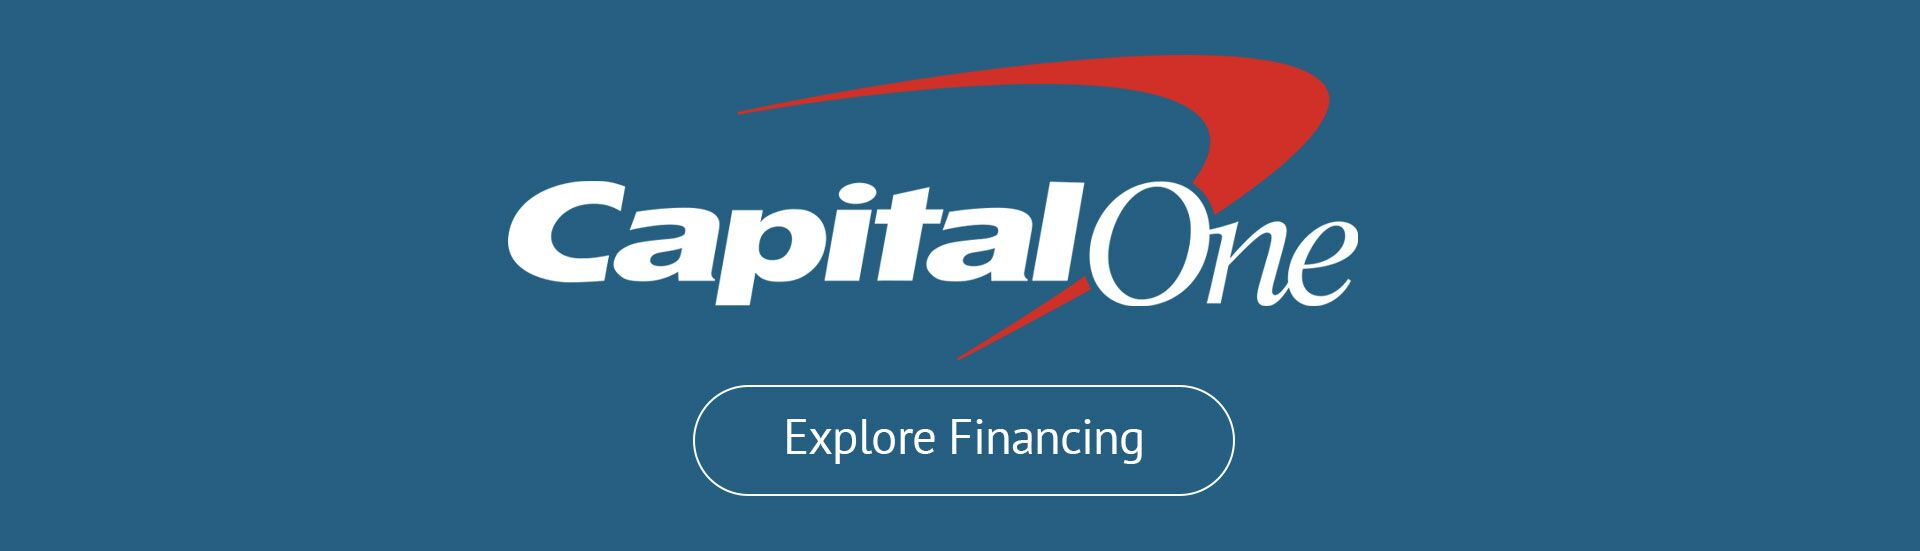 Capital One Explore Financing